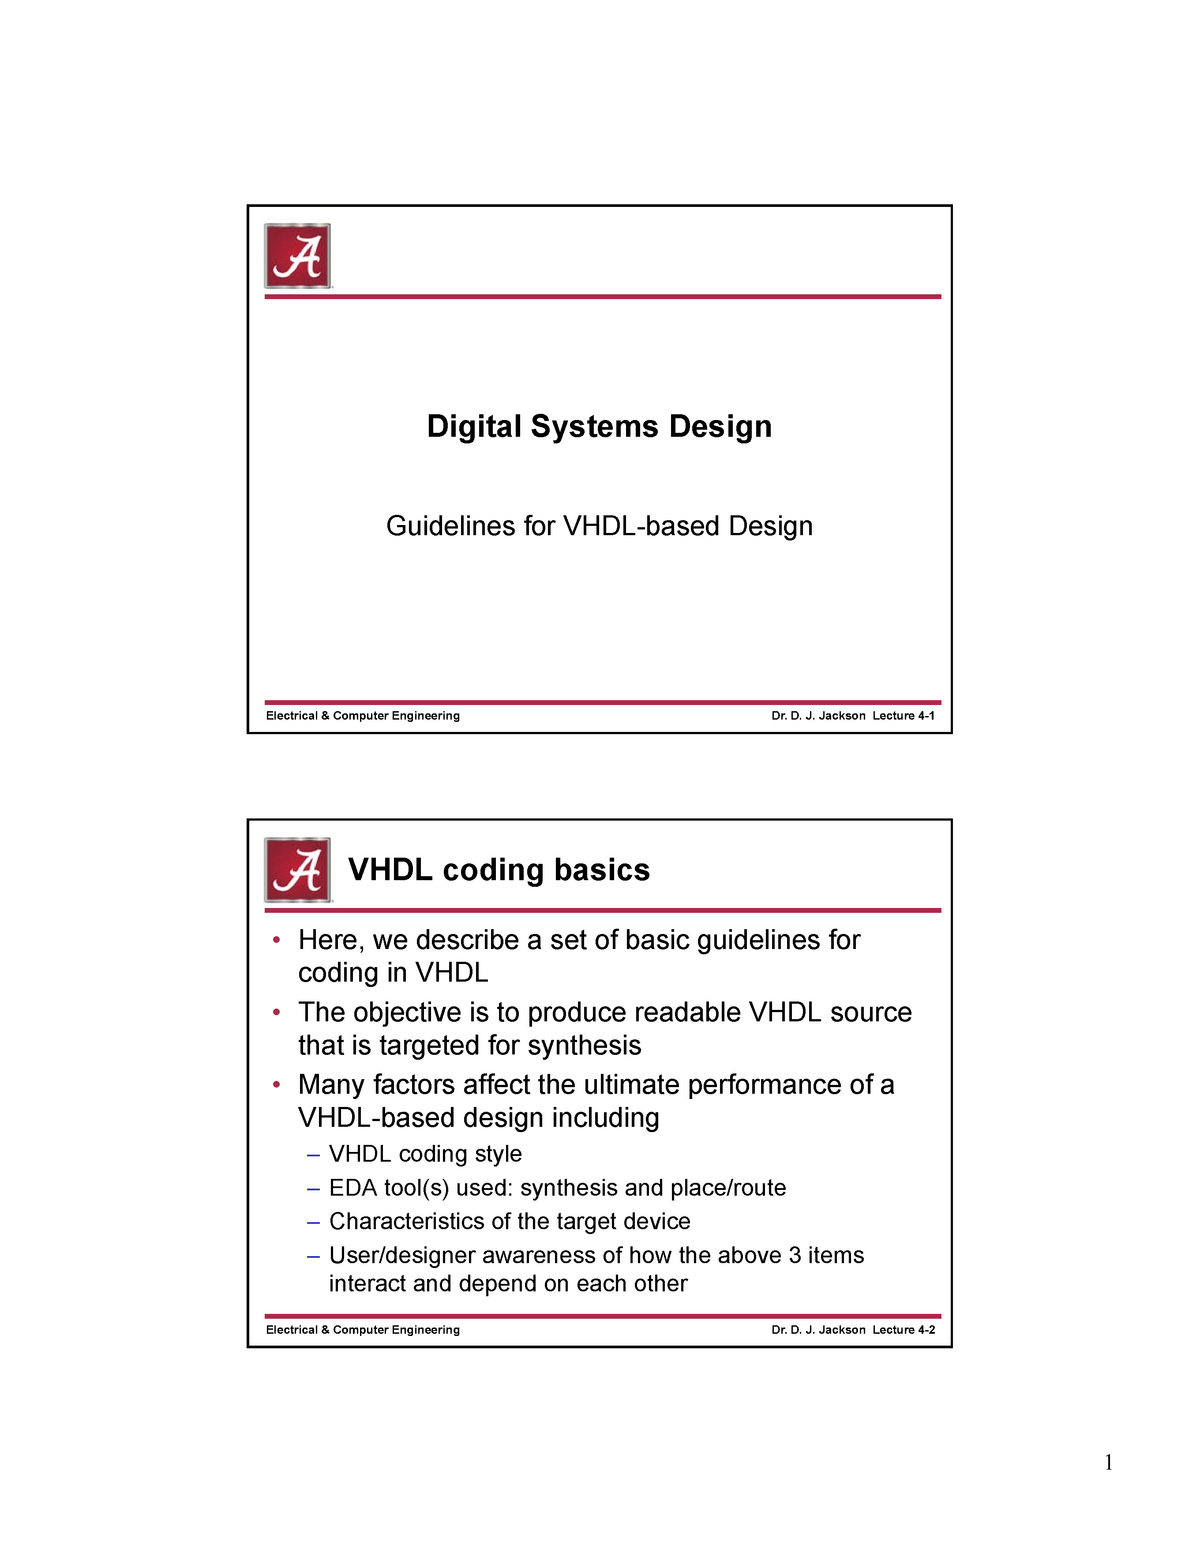 Lec 4 - Guidelines for VHDL-based Design - ECE 480: Digital